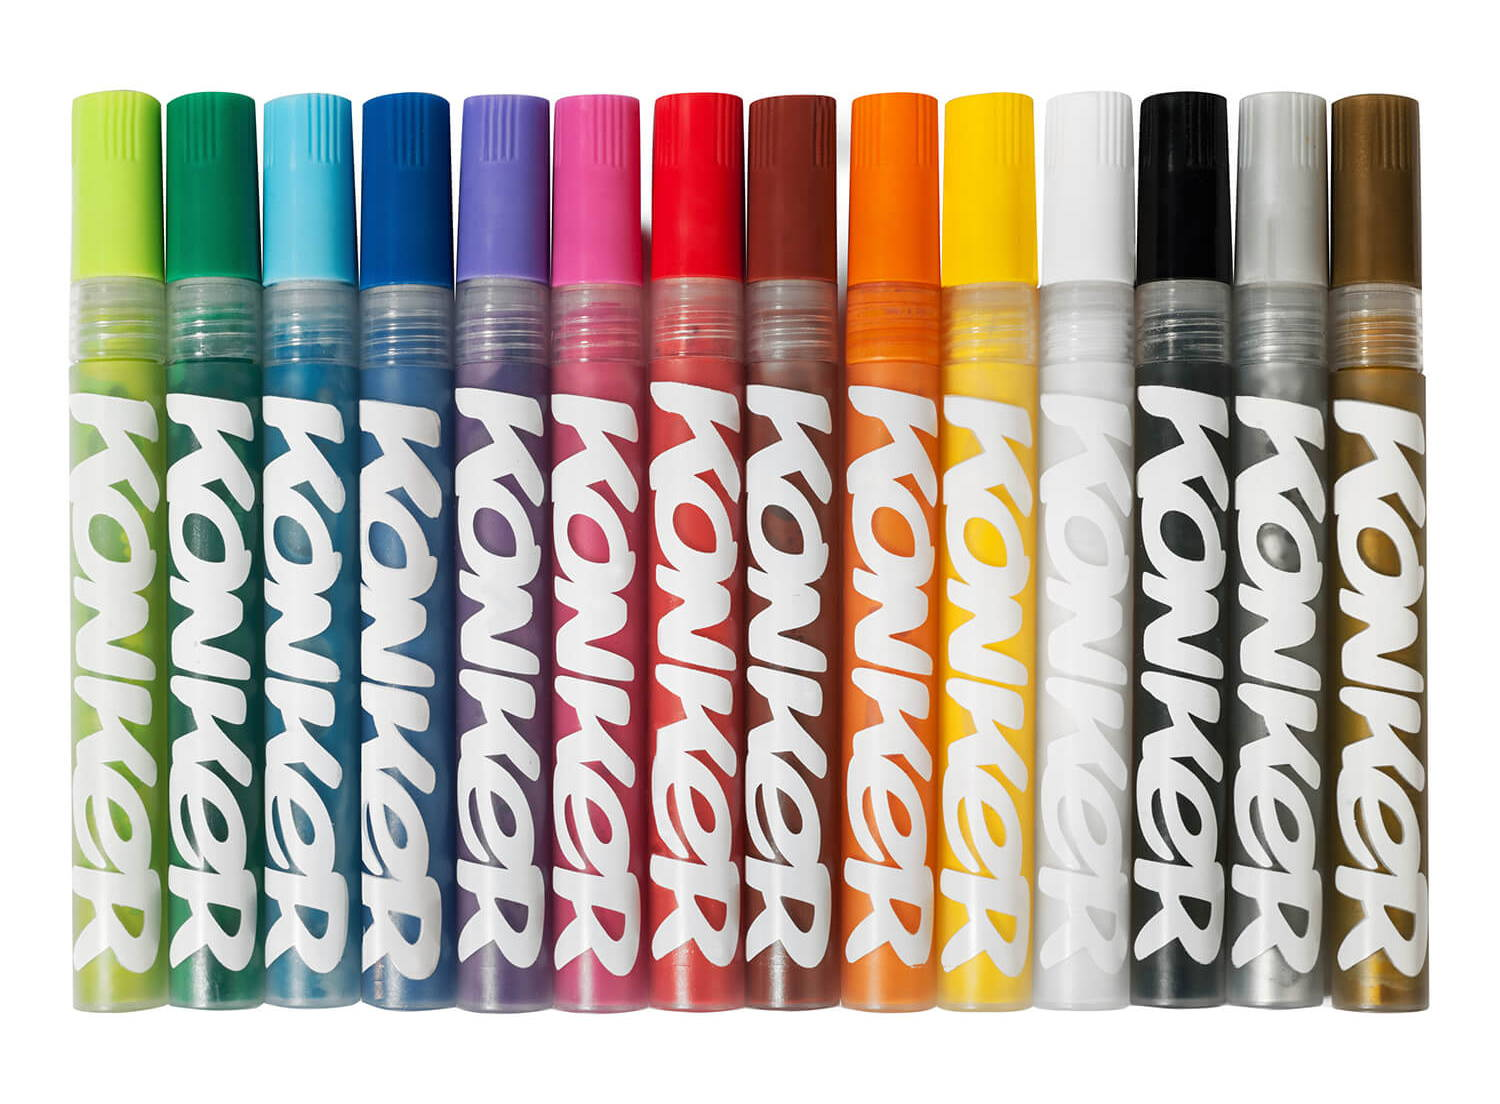 Konker Colors Acrylic Paint Markers